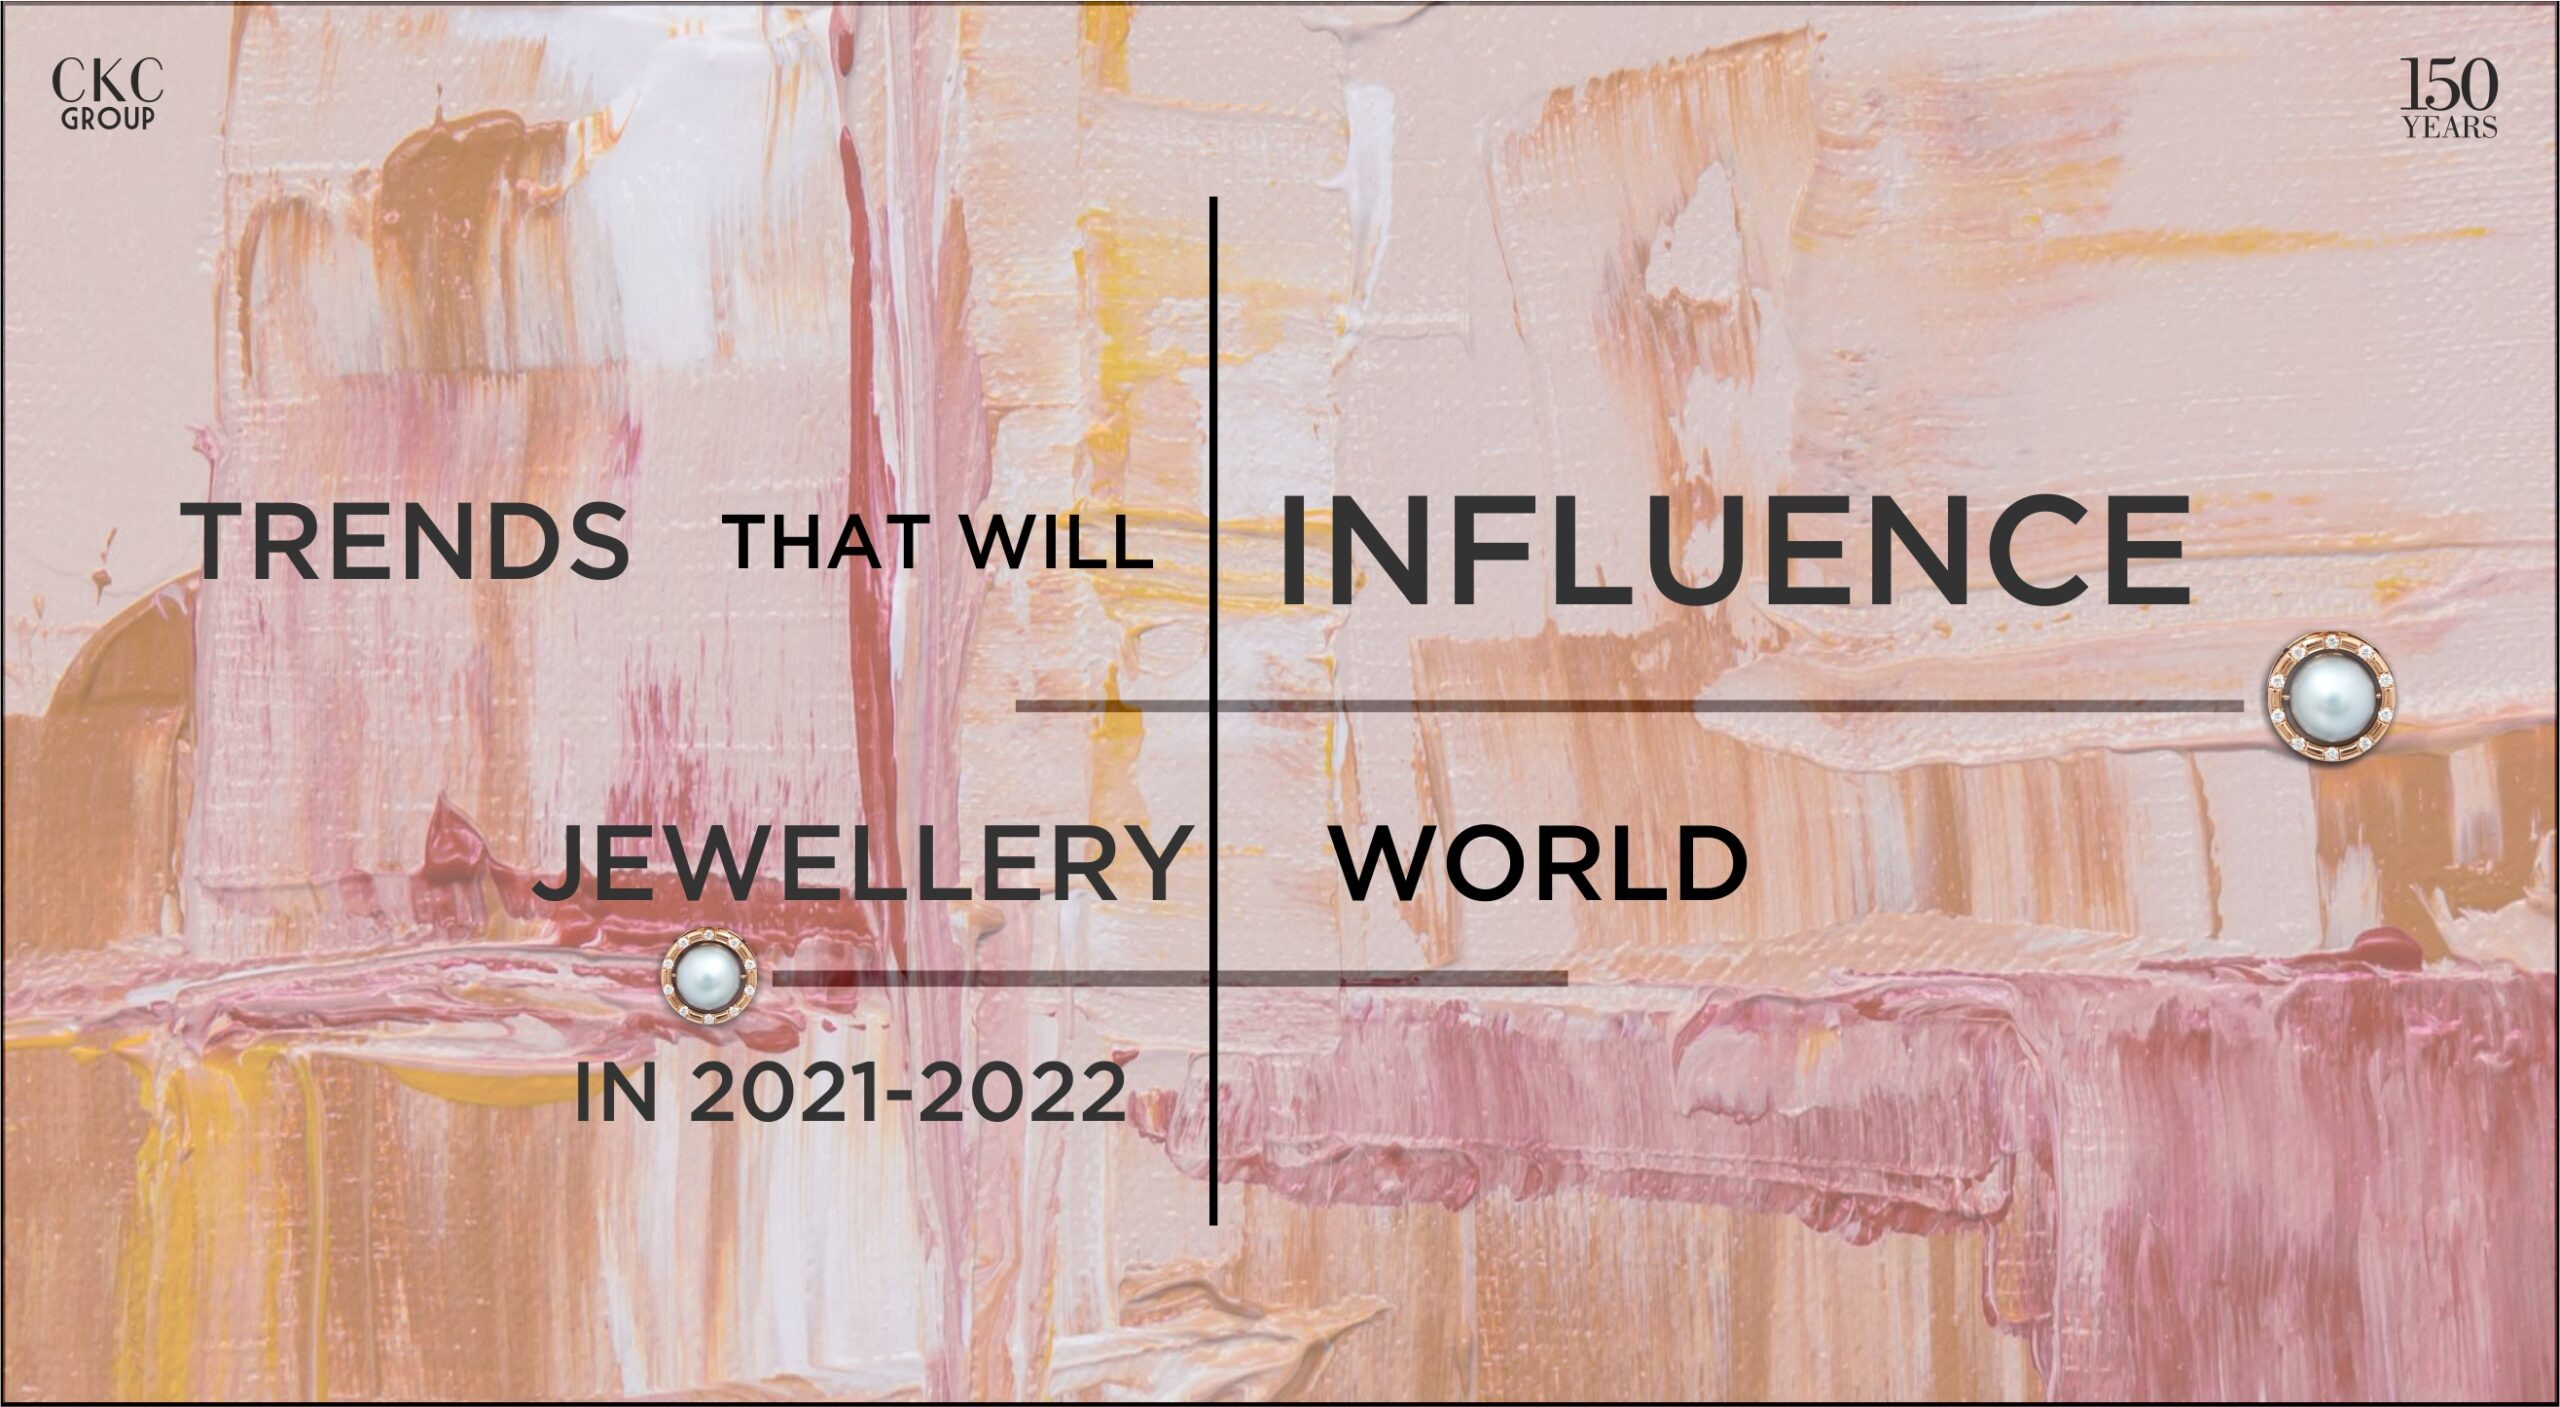 Trends that will influence Jewellery World in 2021-2022